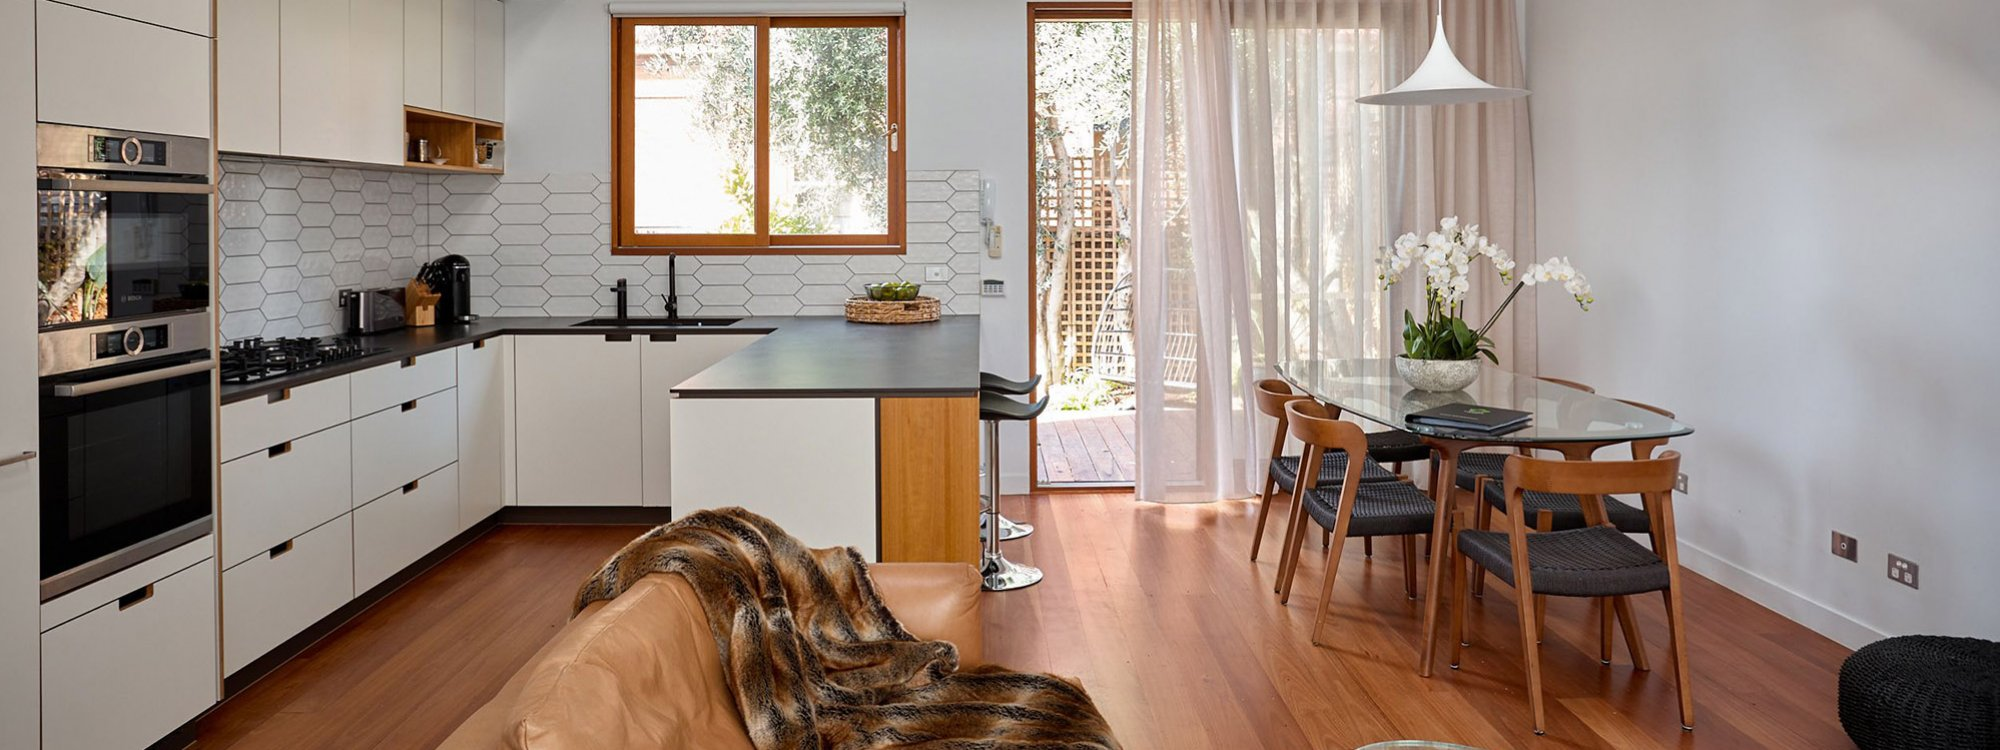 Bay Waves - Albert Park - Kitchen and dining